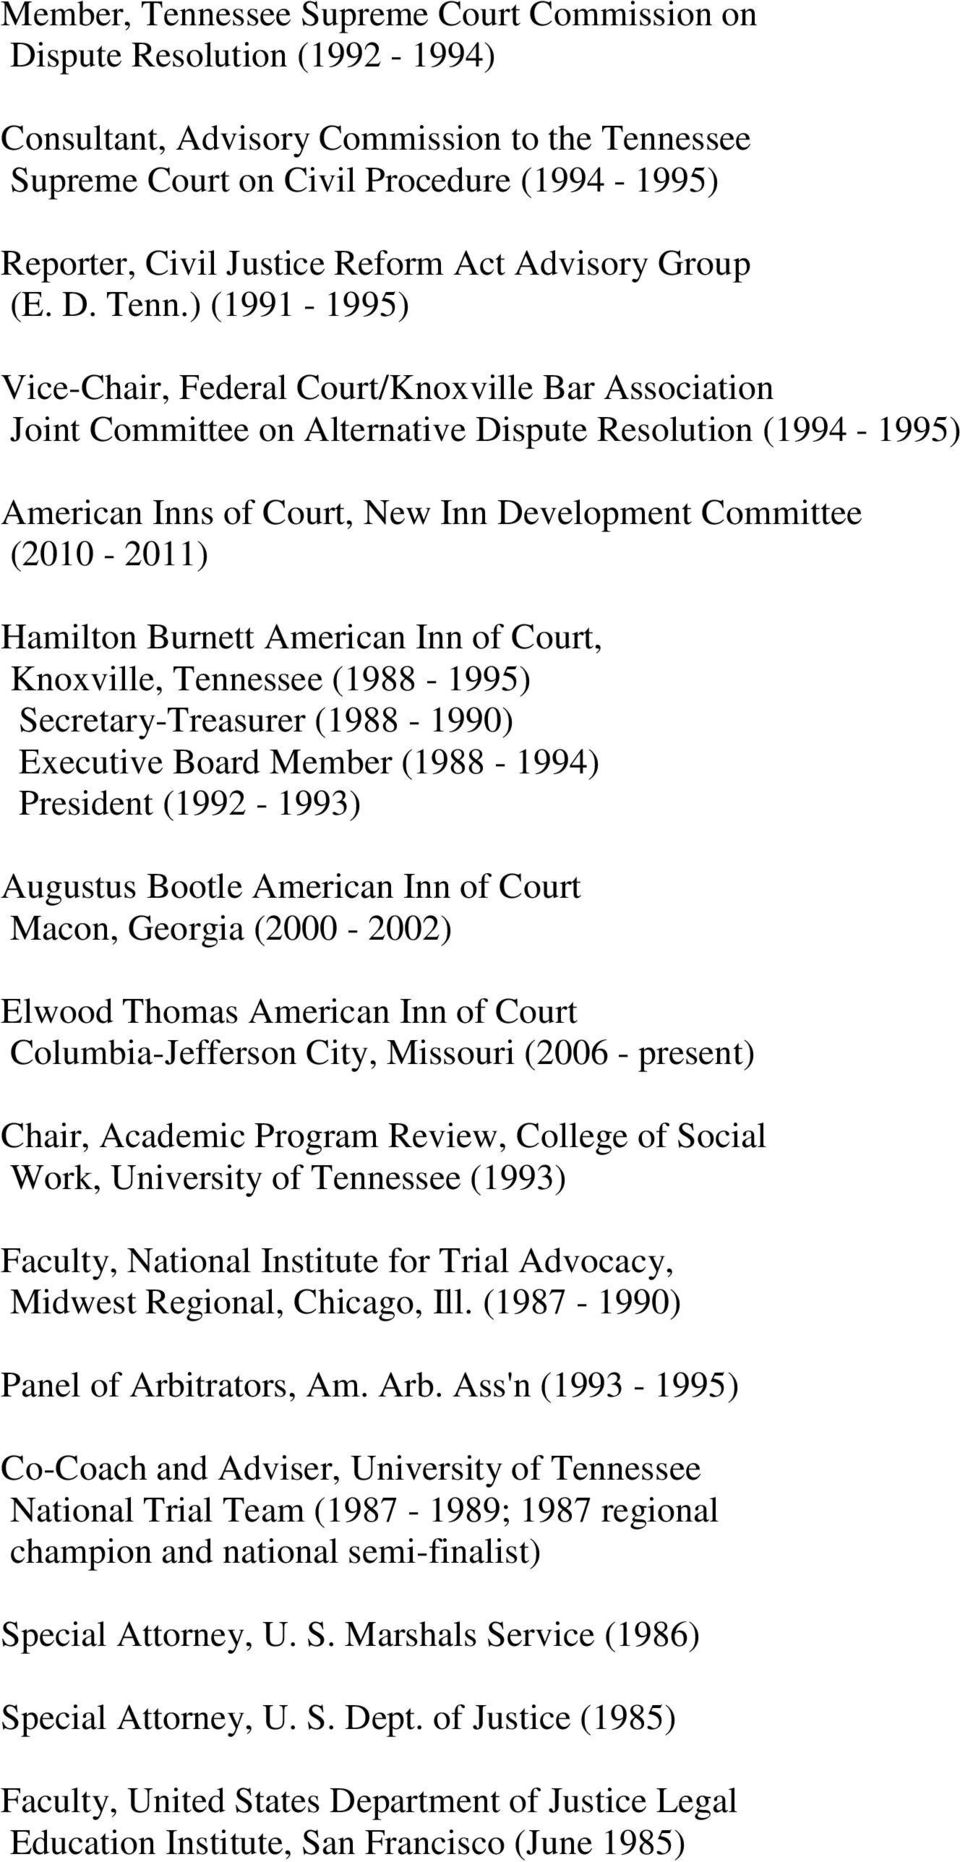 ) (1991-1995) Vice-Chair, Federal Court/Knoxville Bar Association Joint Committee on Alternative Dispute Resolution (1994-1995) American Inns of Court, New Inn Development Committee (2010-2011)